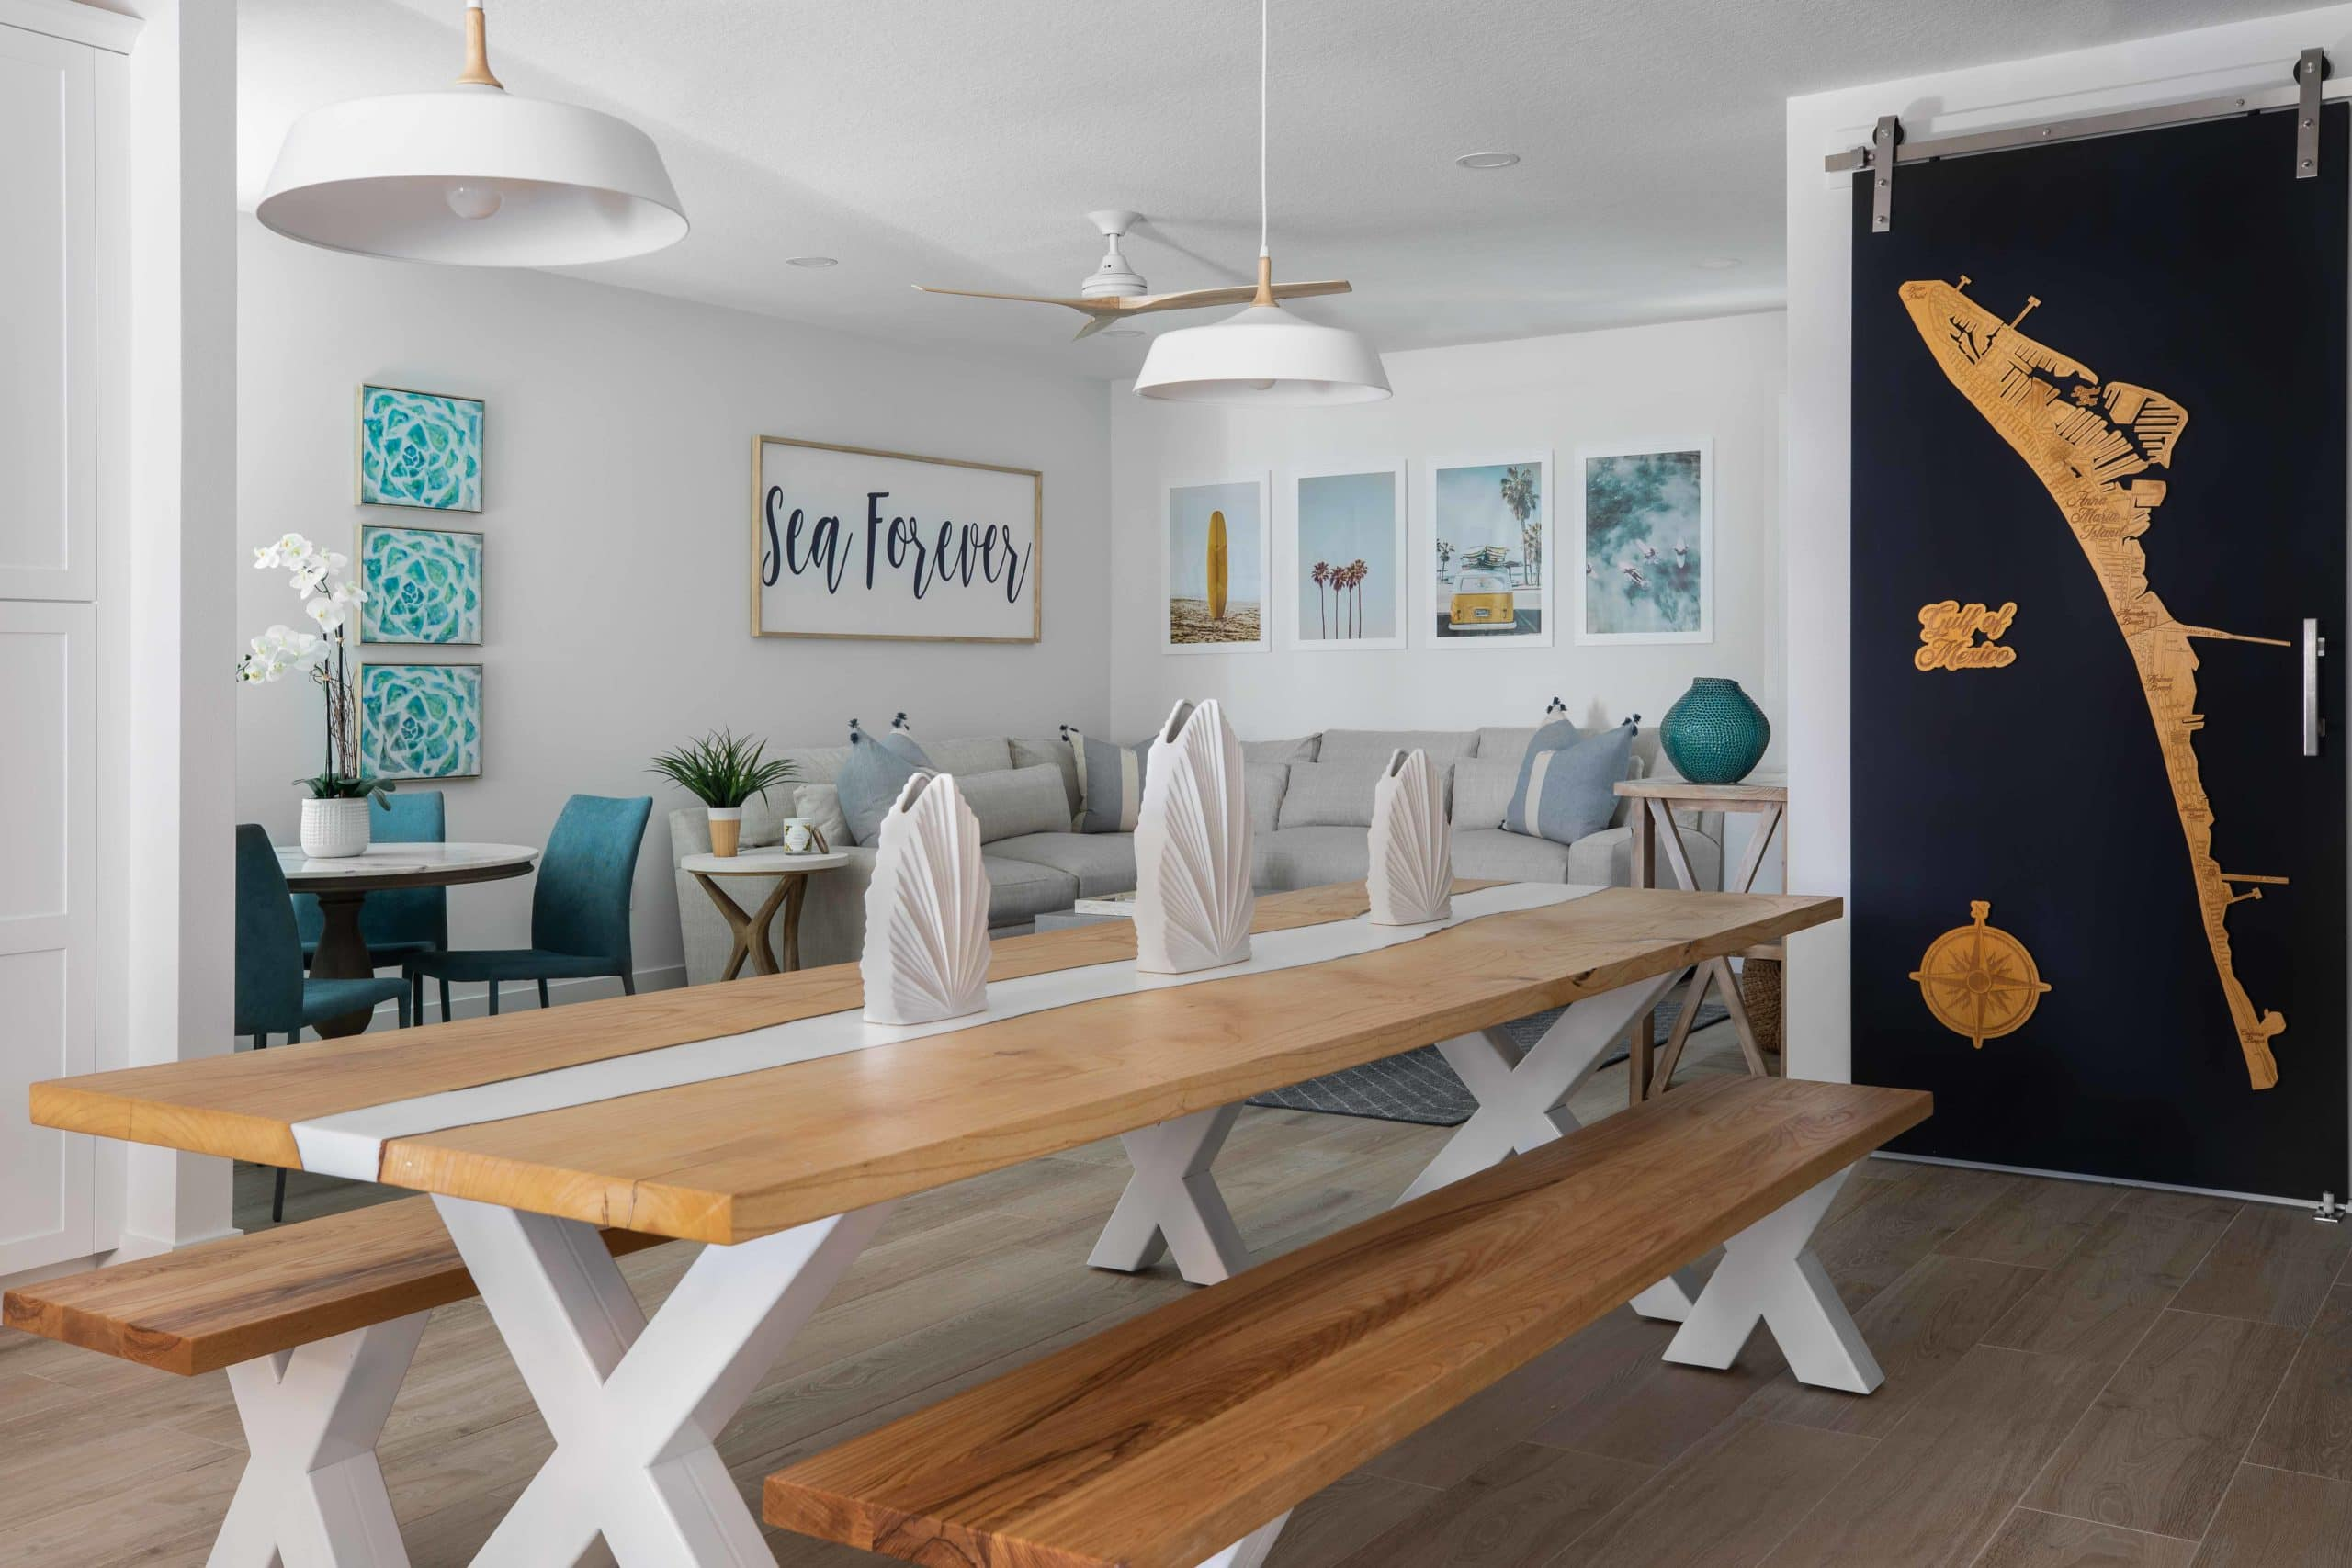 SEA FOREVER BEACH HOUSE DINING